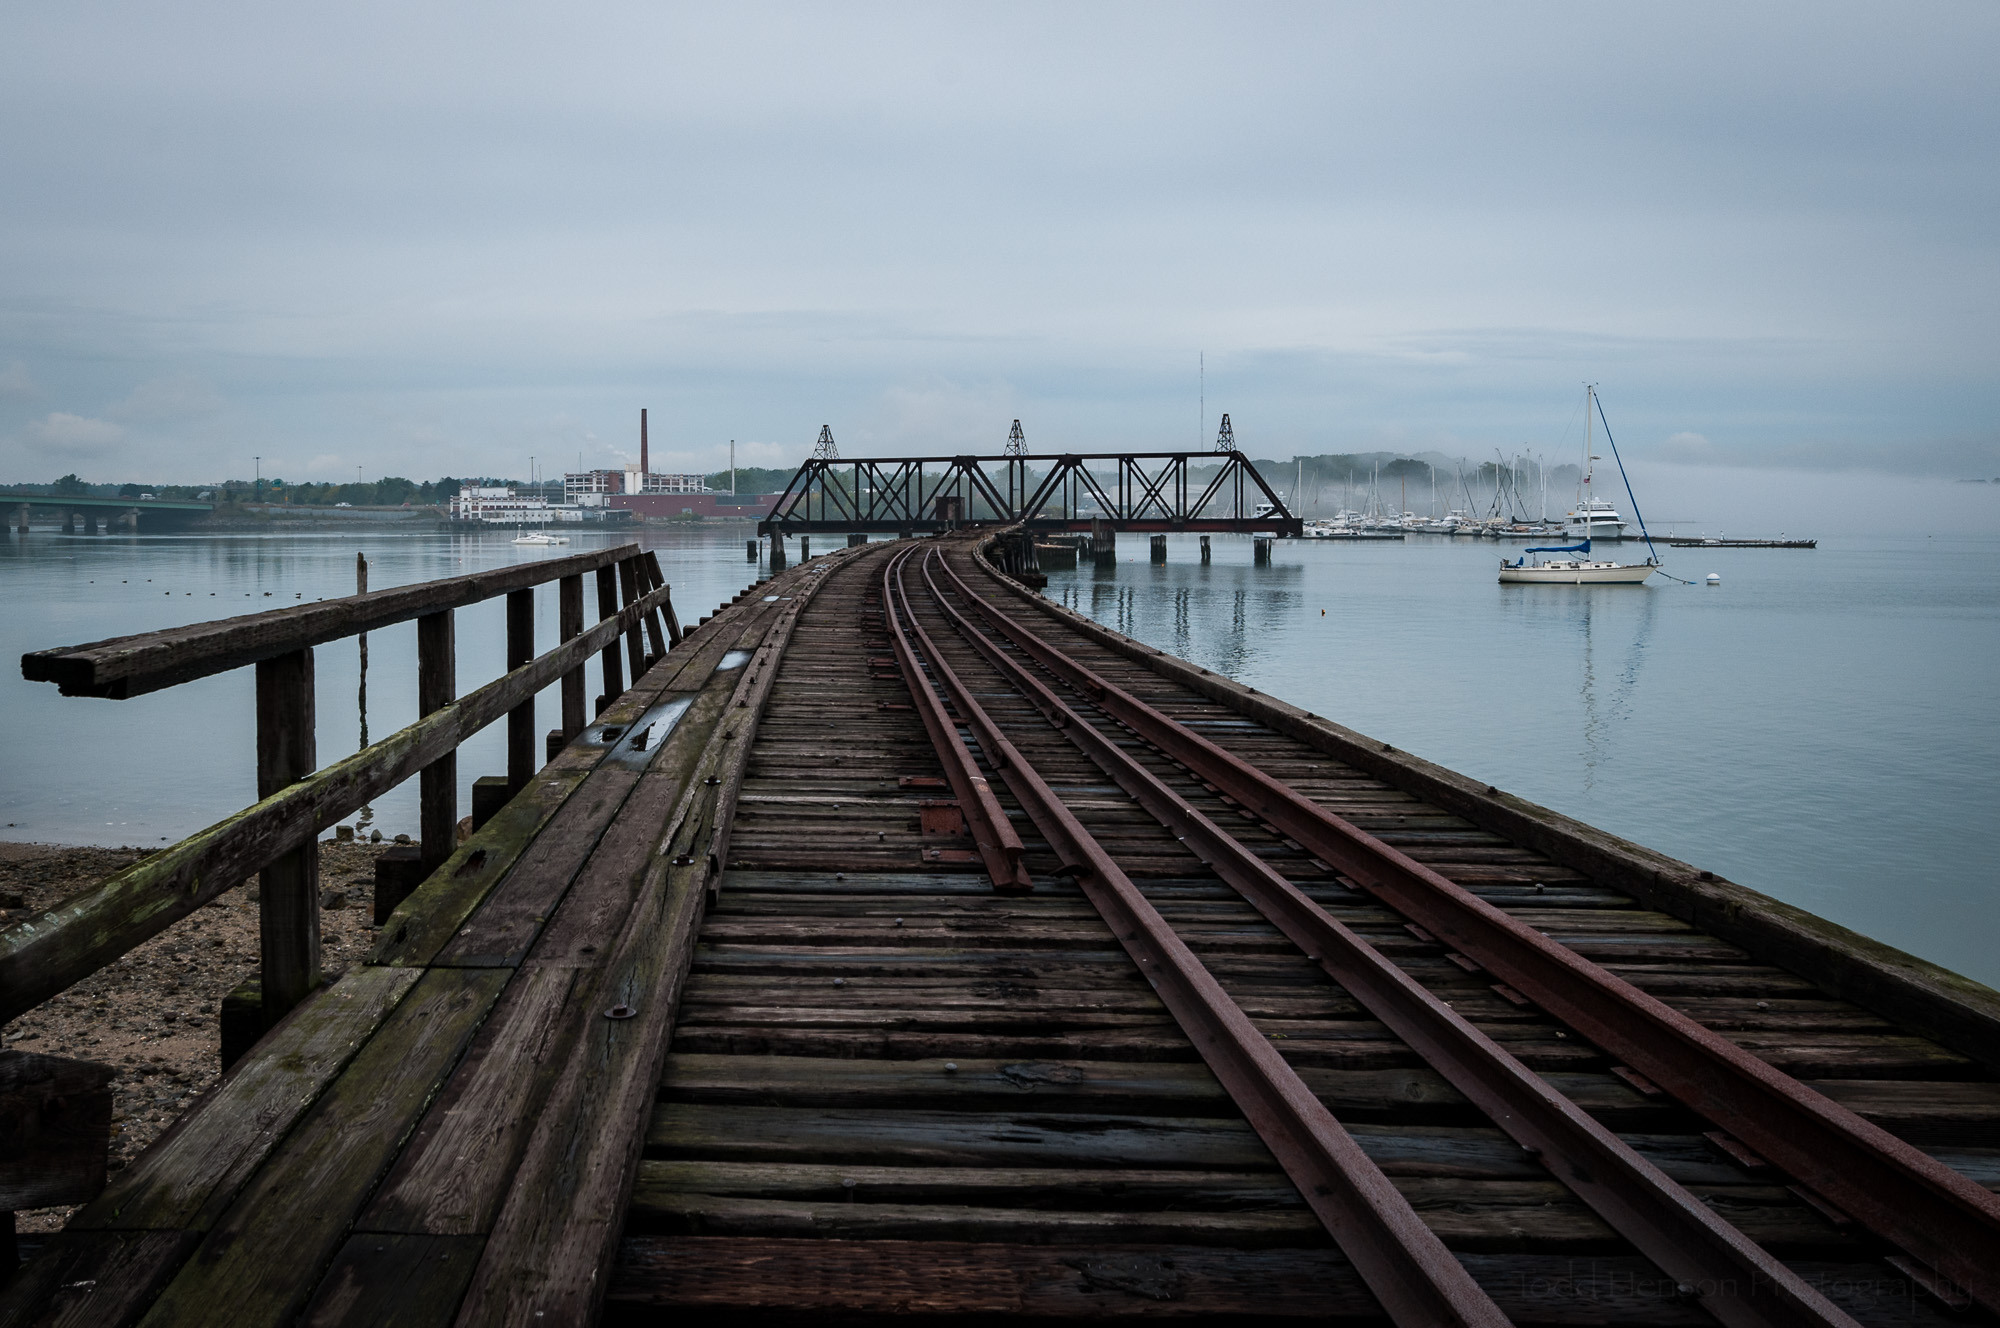 Old railroad bridge with Burnham & Morrill Company factory on distant shore